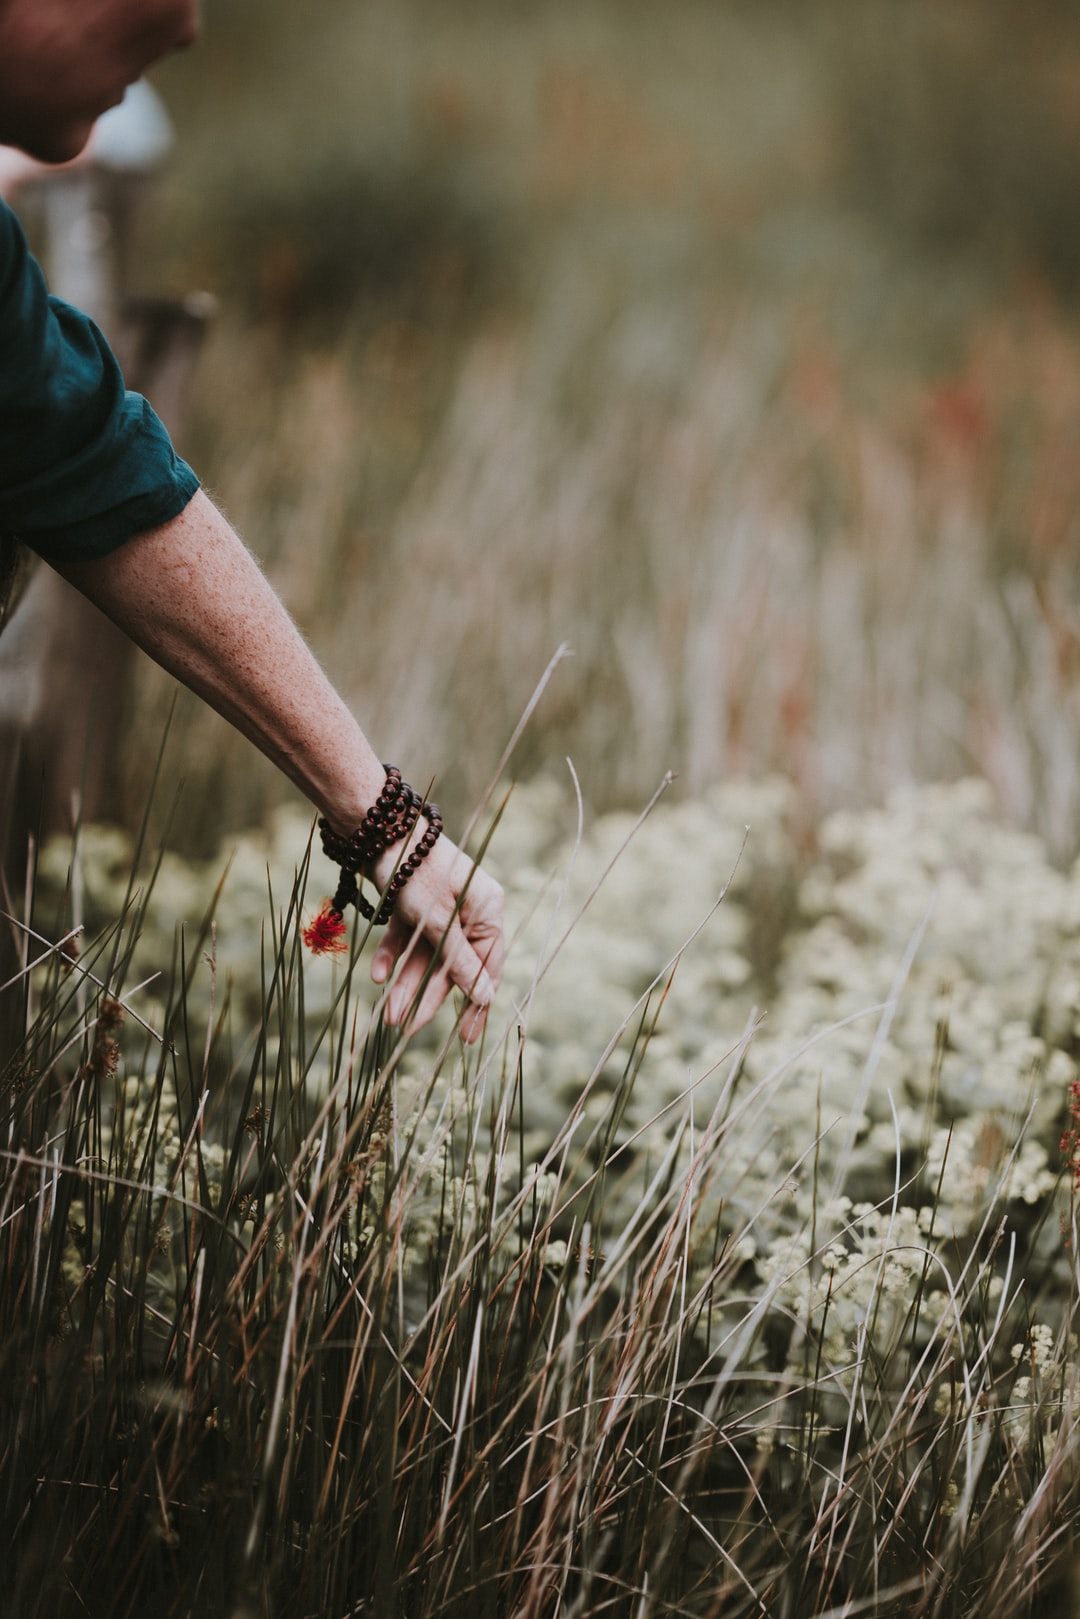 Hand reaching out, touching the long grass